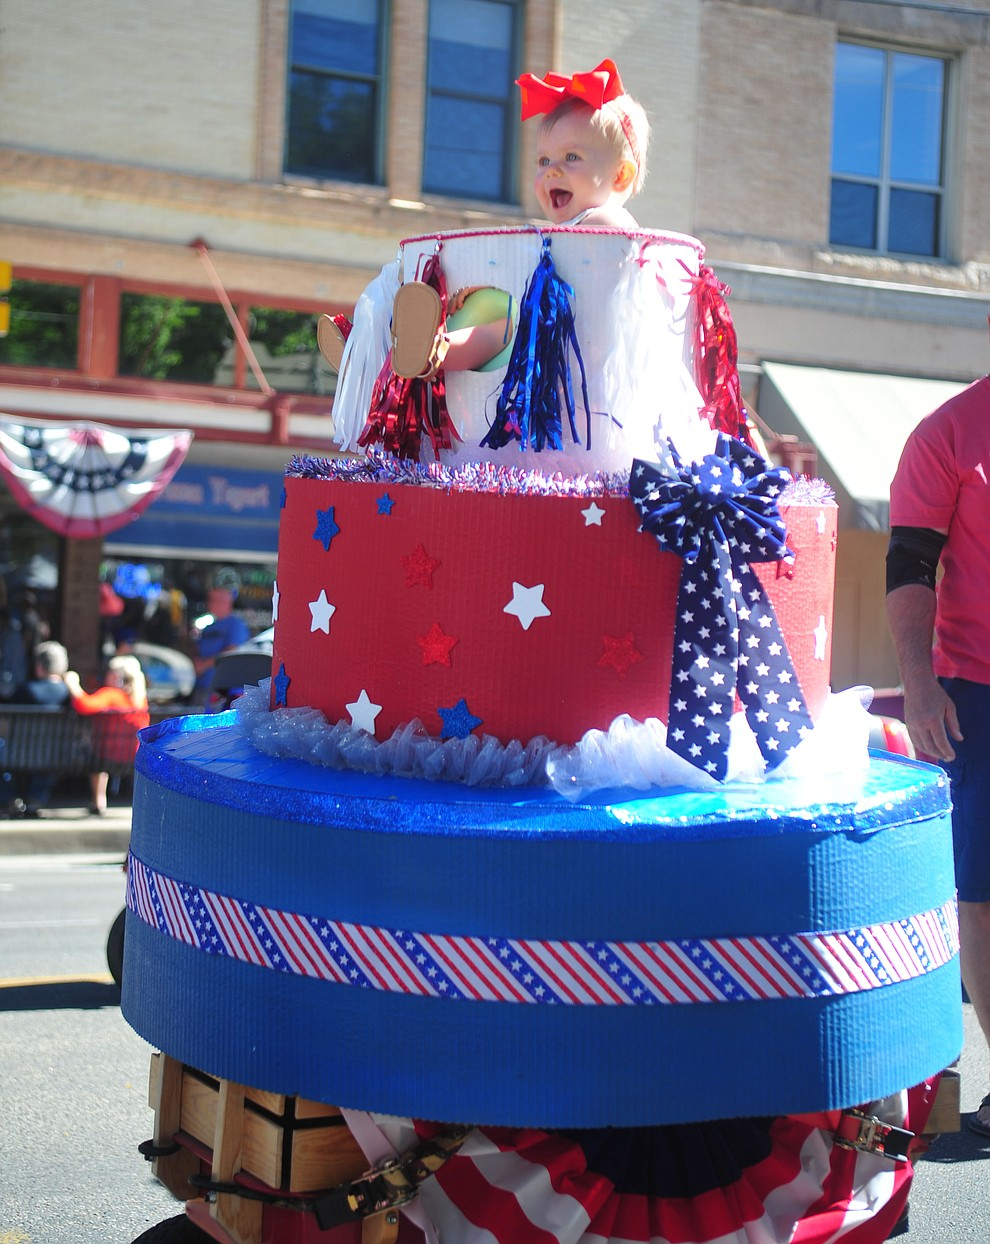 Ensley Smith is all smiles coming out of America's birthday cake during the 78th annual Kiwanis Kiddie Parade along Cortez Street in downtown Prescott Friday July 5, 2019.  (Les Stukenberg/Courier)